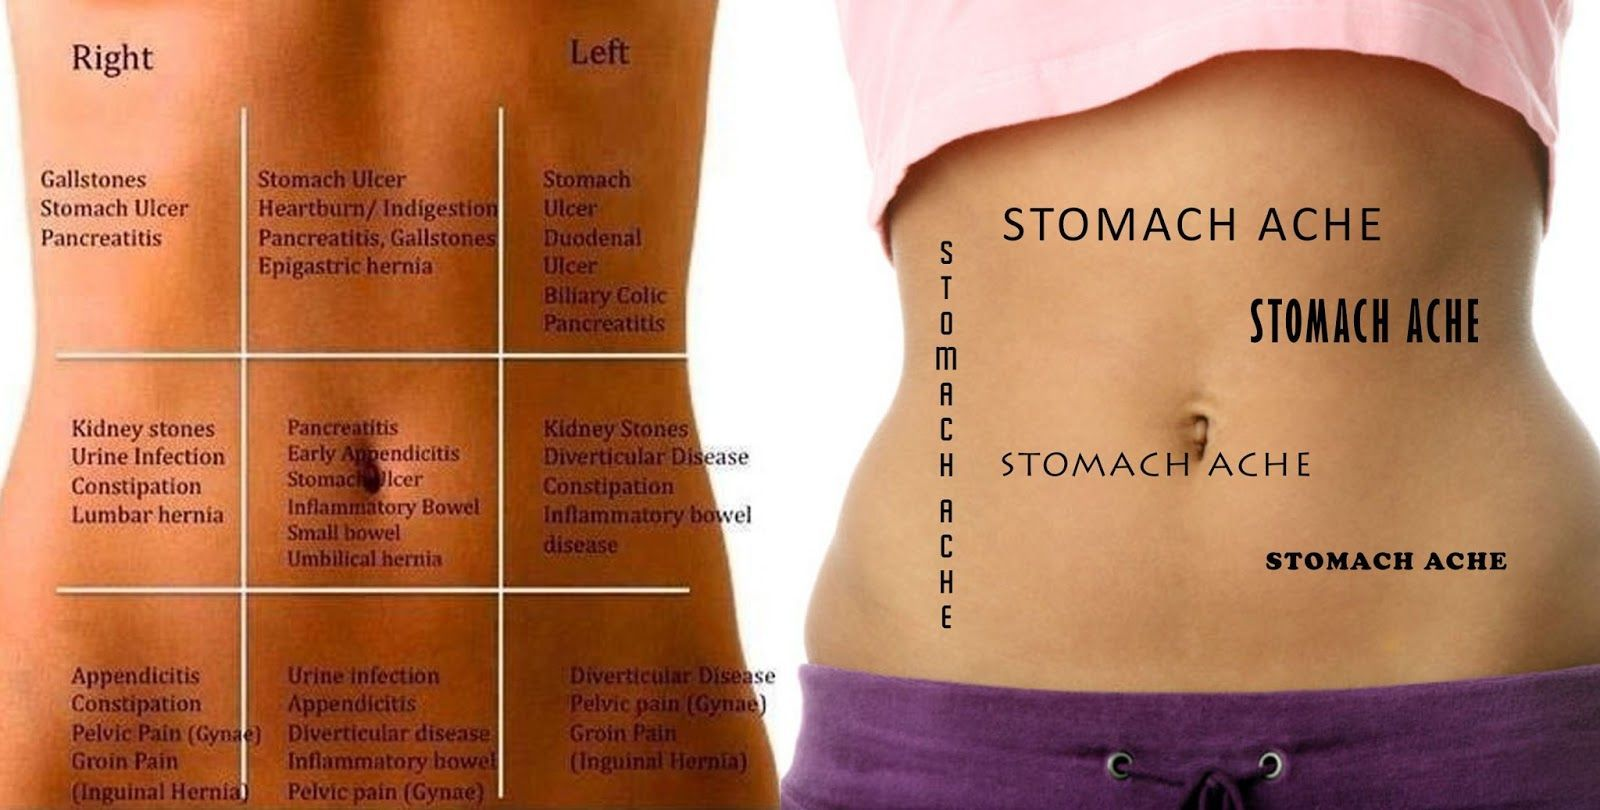 Female Abdominal Anatomy Images Human Anatomy Pictures Pinterest